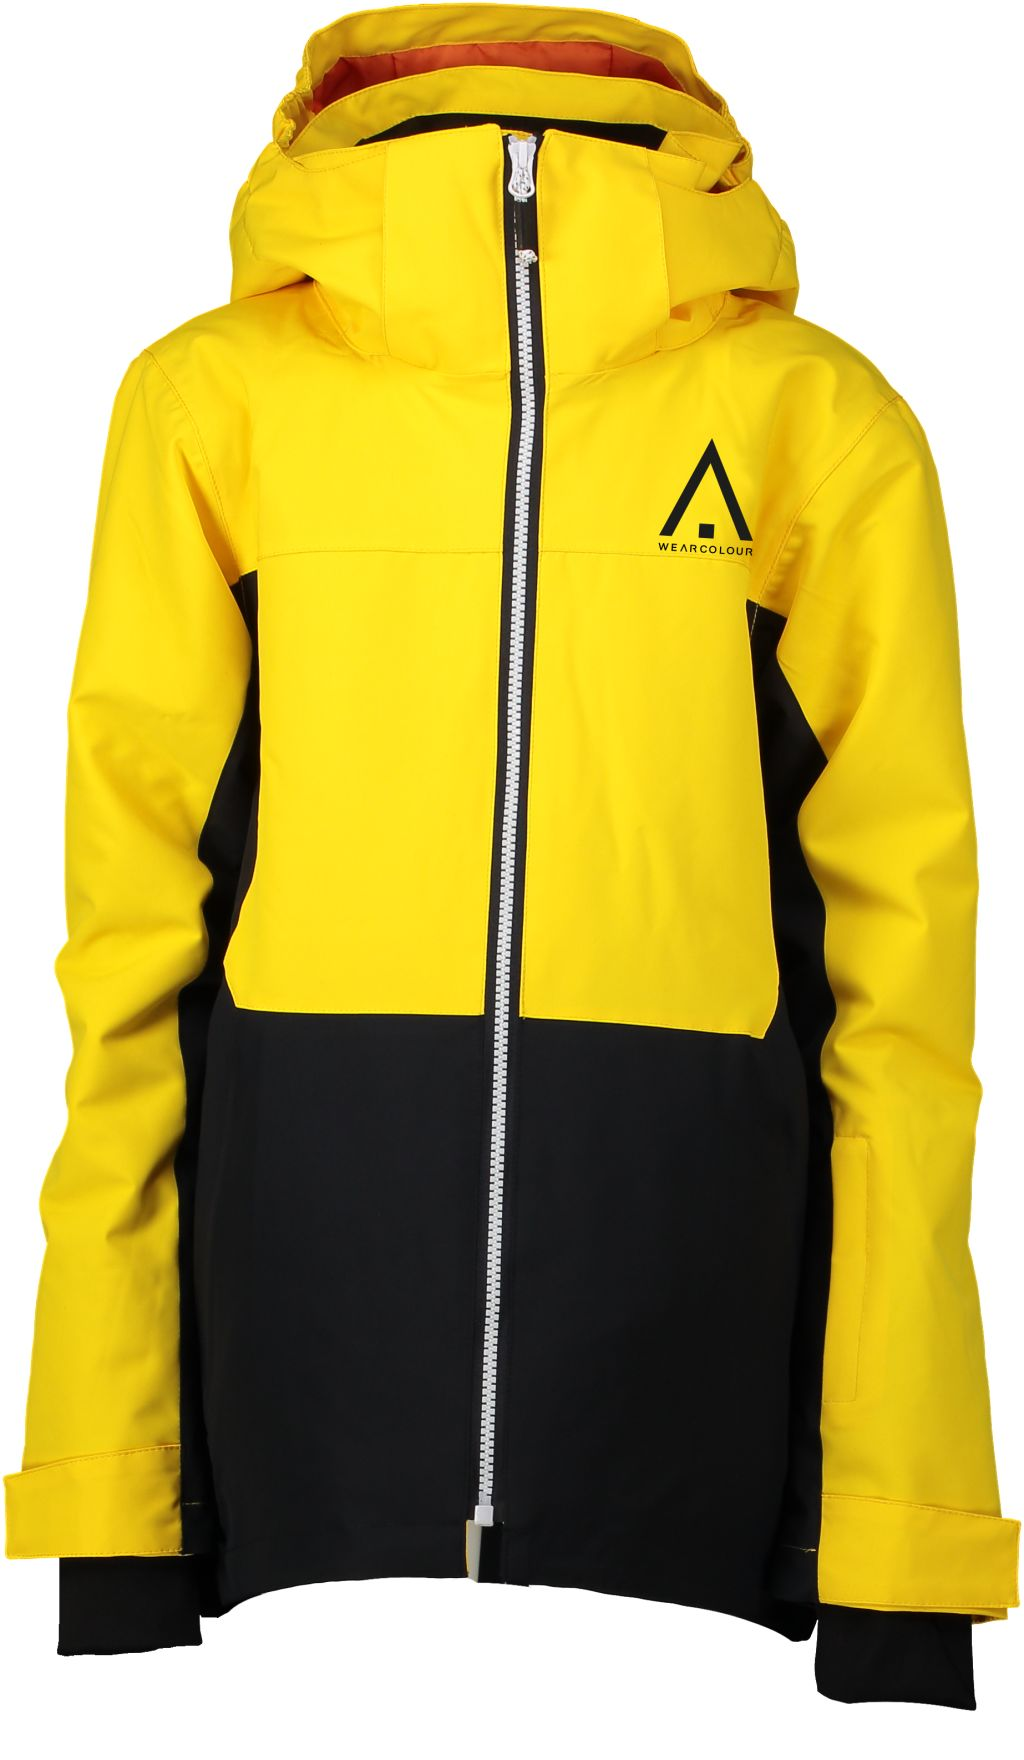 Wear Colour Split Jacket Jr